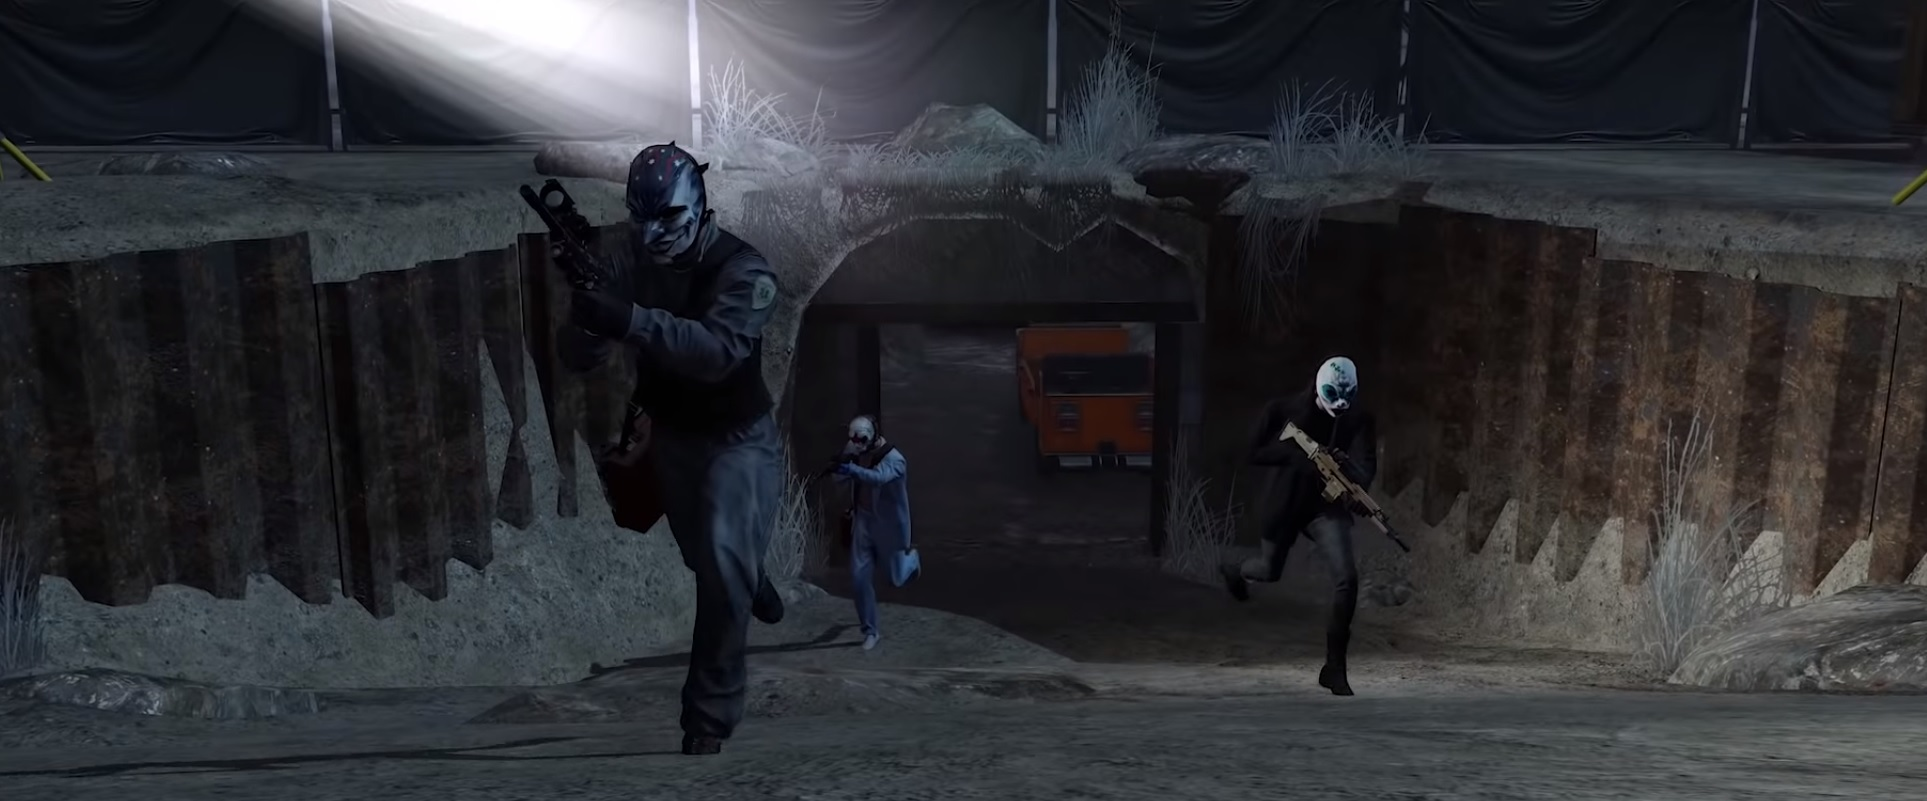 Amid Starbreeze's troubles, Payday 2 is getting DLC soon following a content drought screenshot